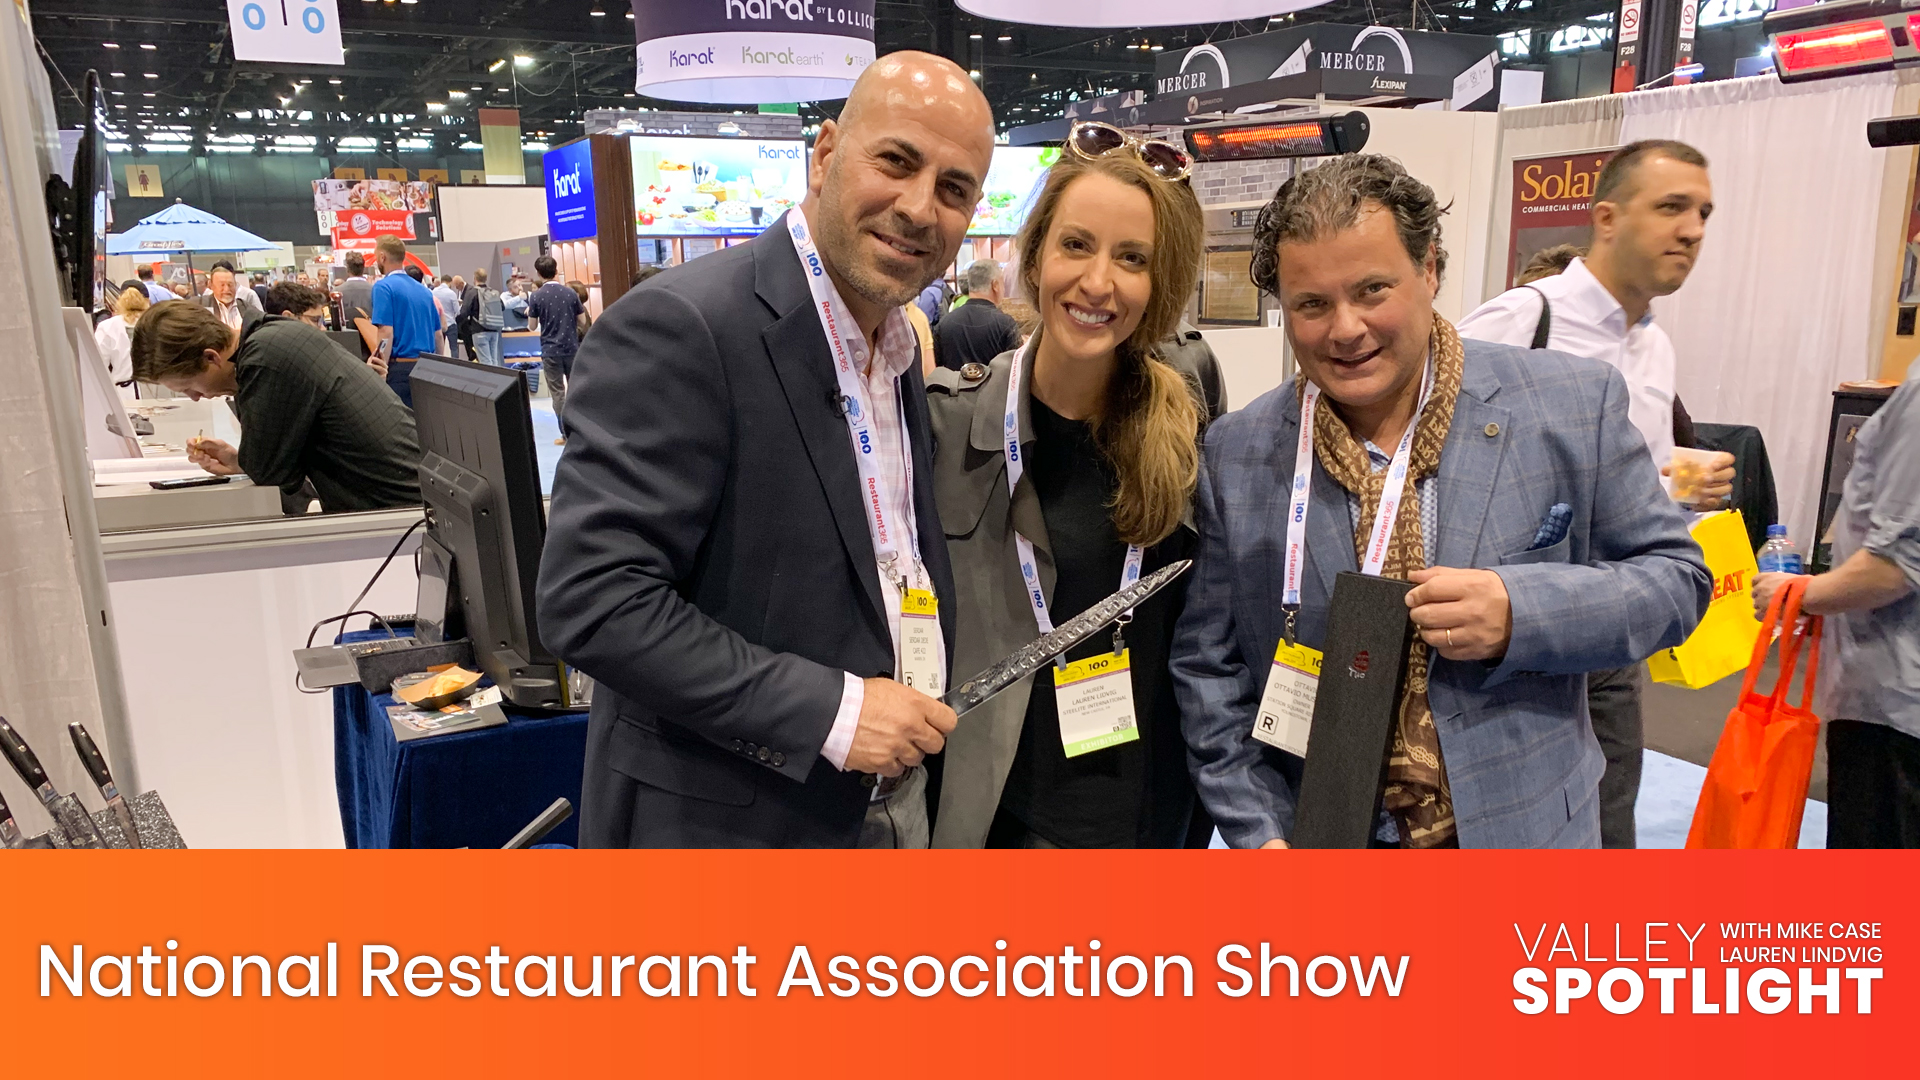 National Restaurant Association Show